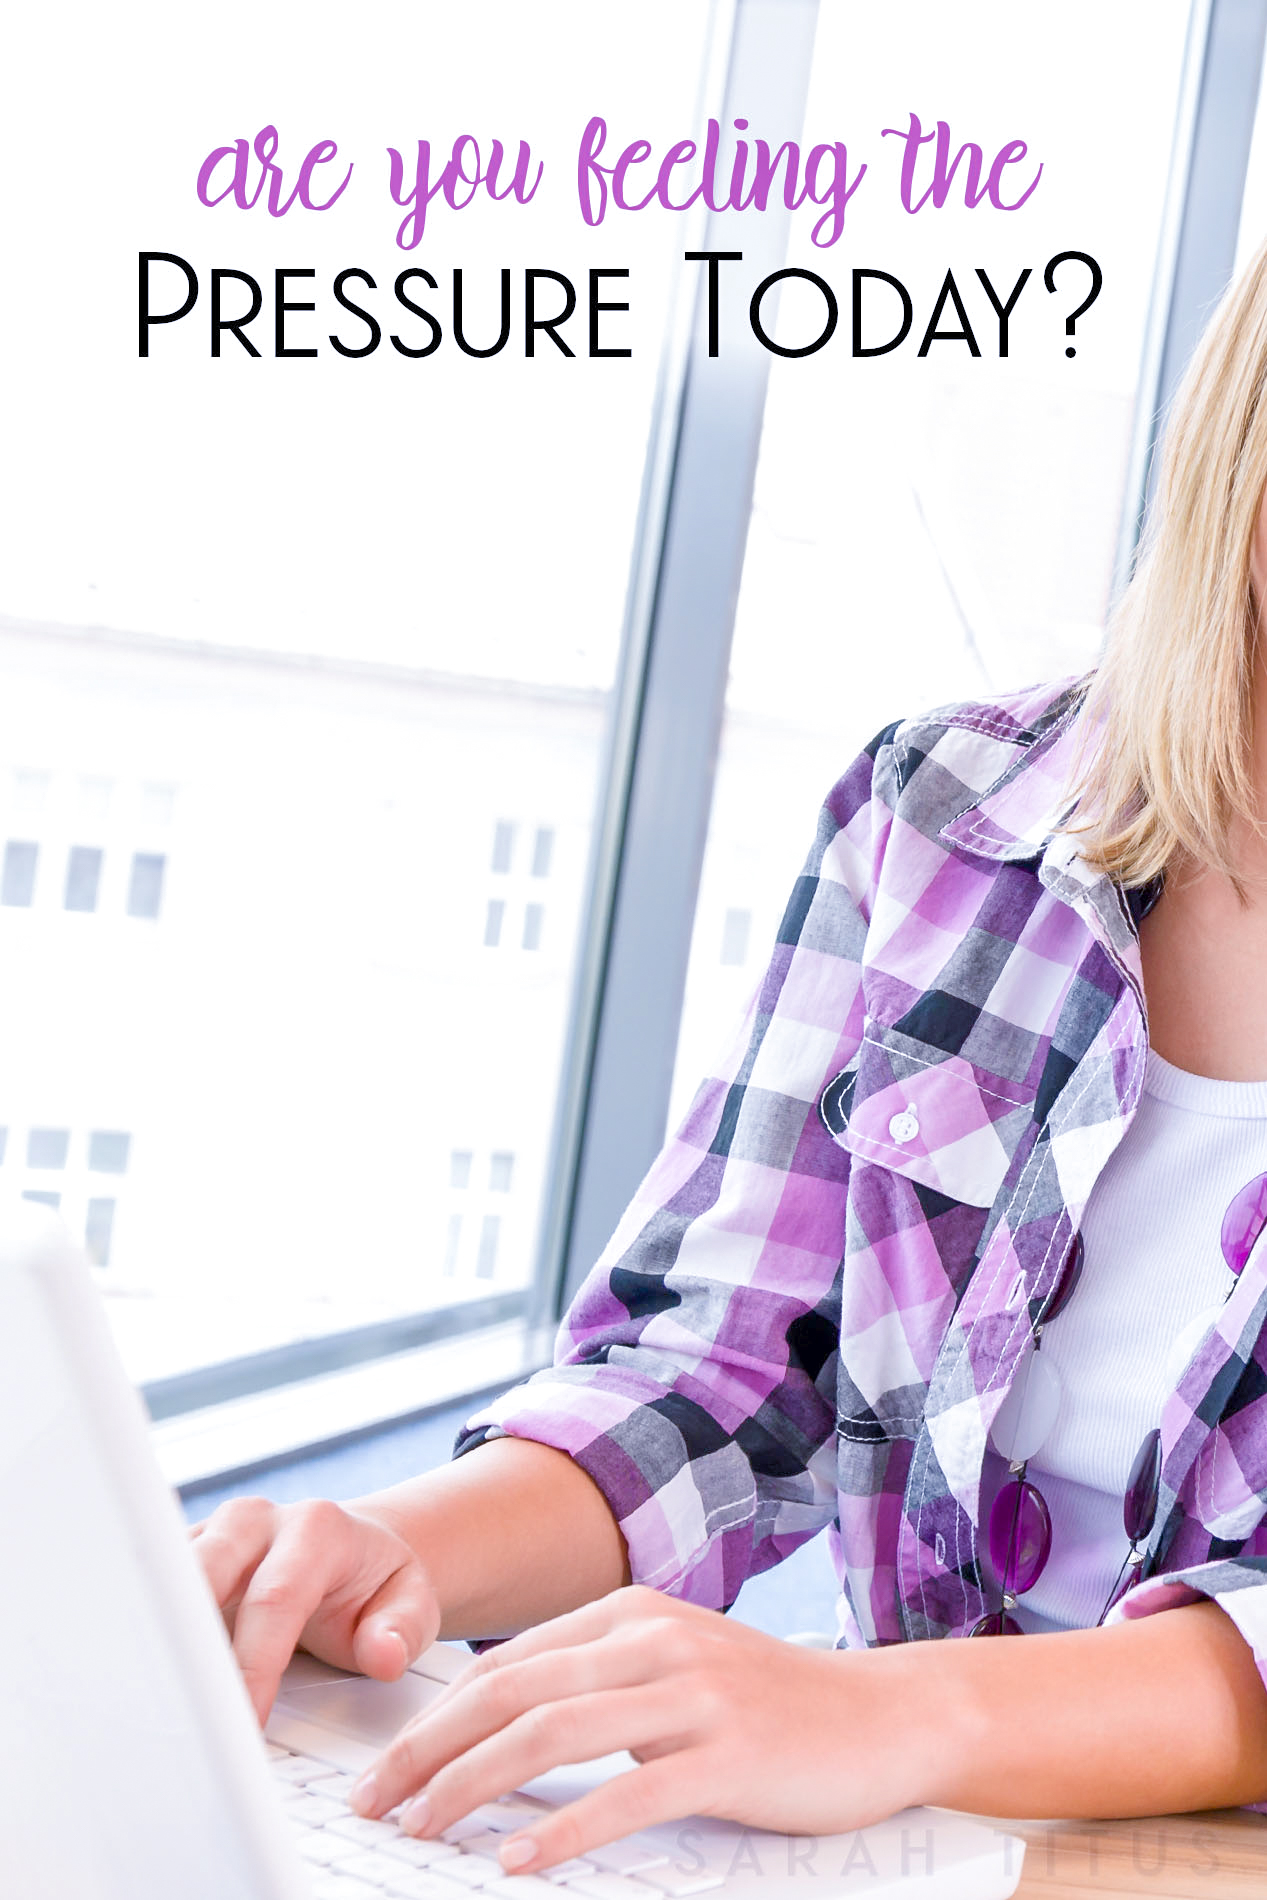 Maybe it's your friends, your church, your parents, or the world in general. If you are feeling the pressure, I can help!